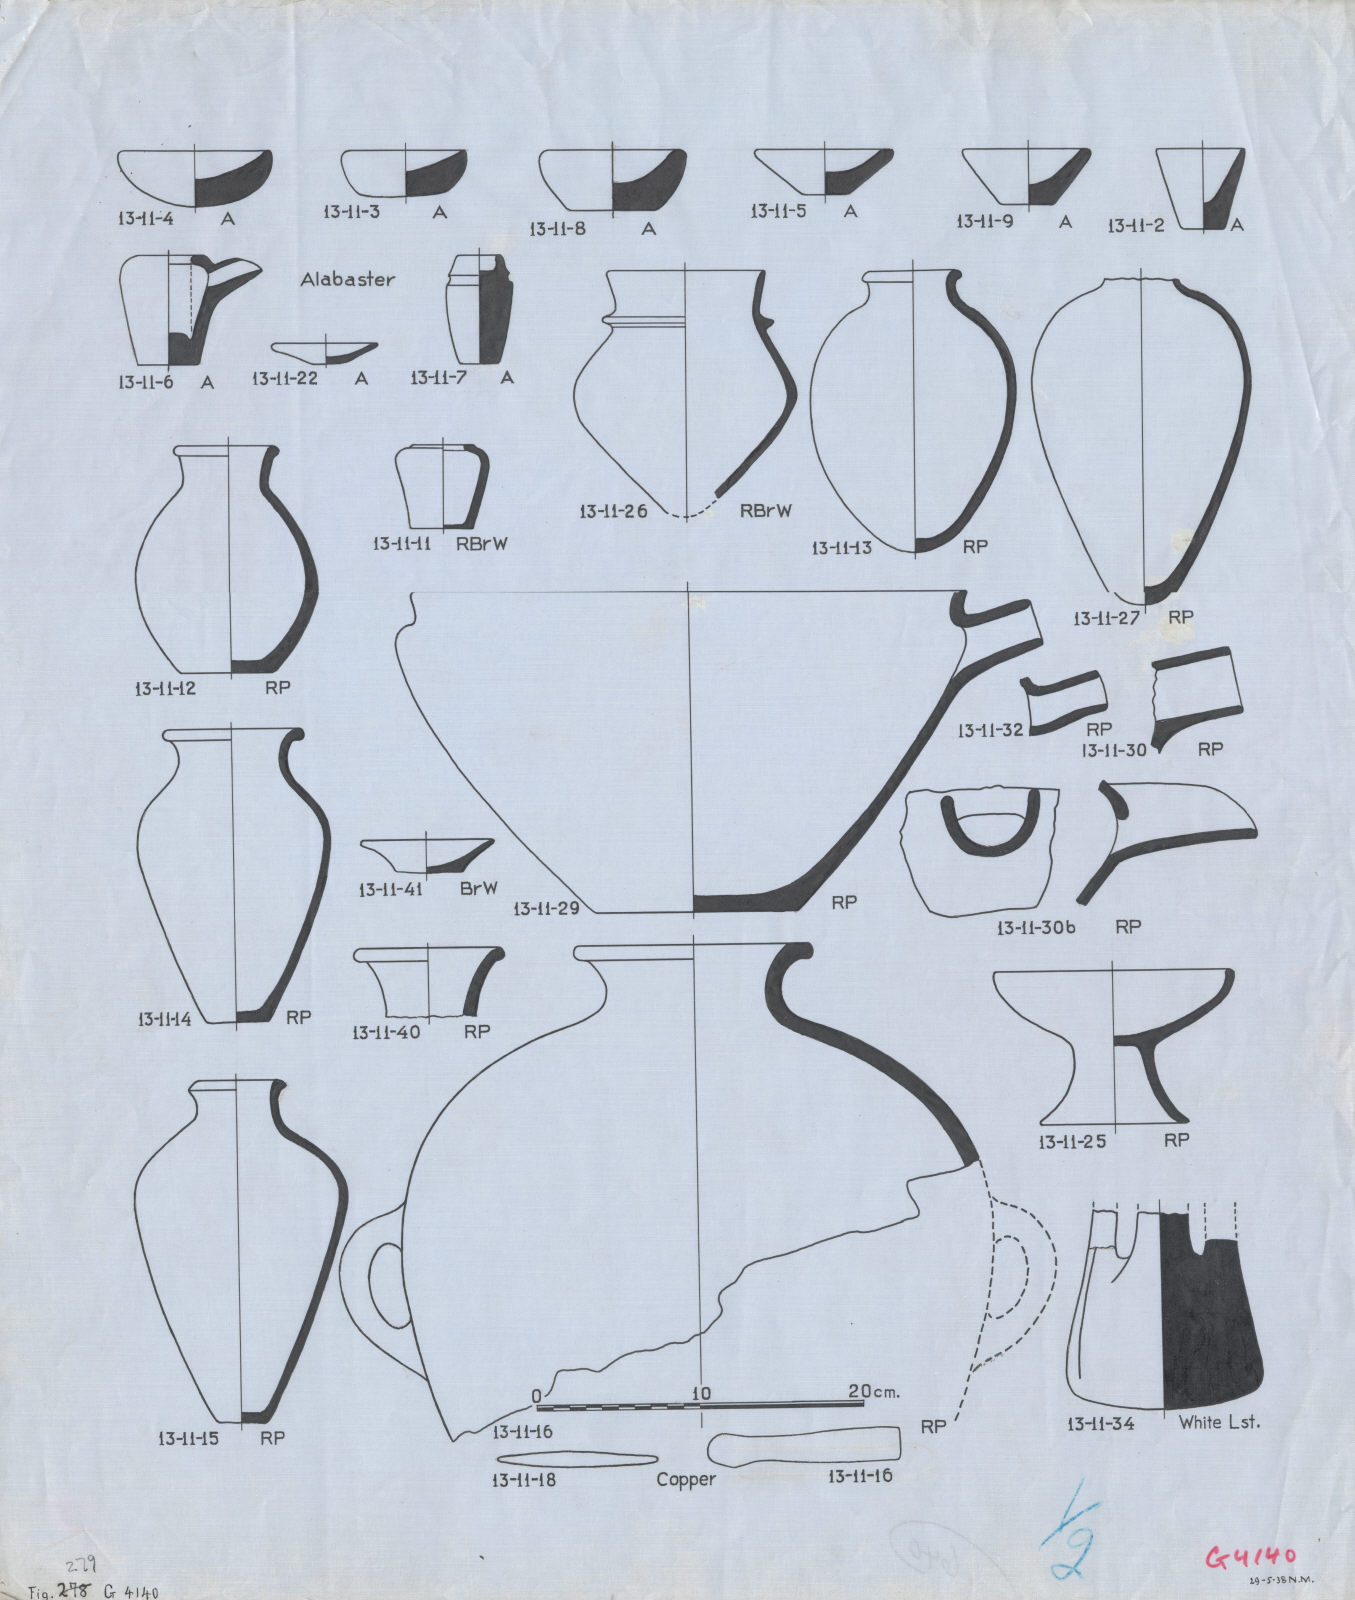 Drawings: G 4140: objects